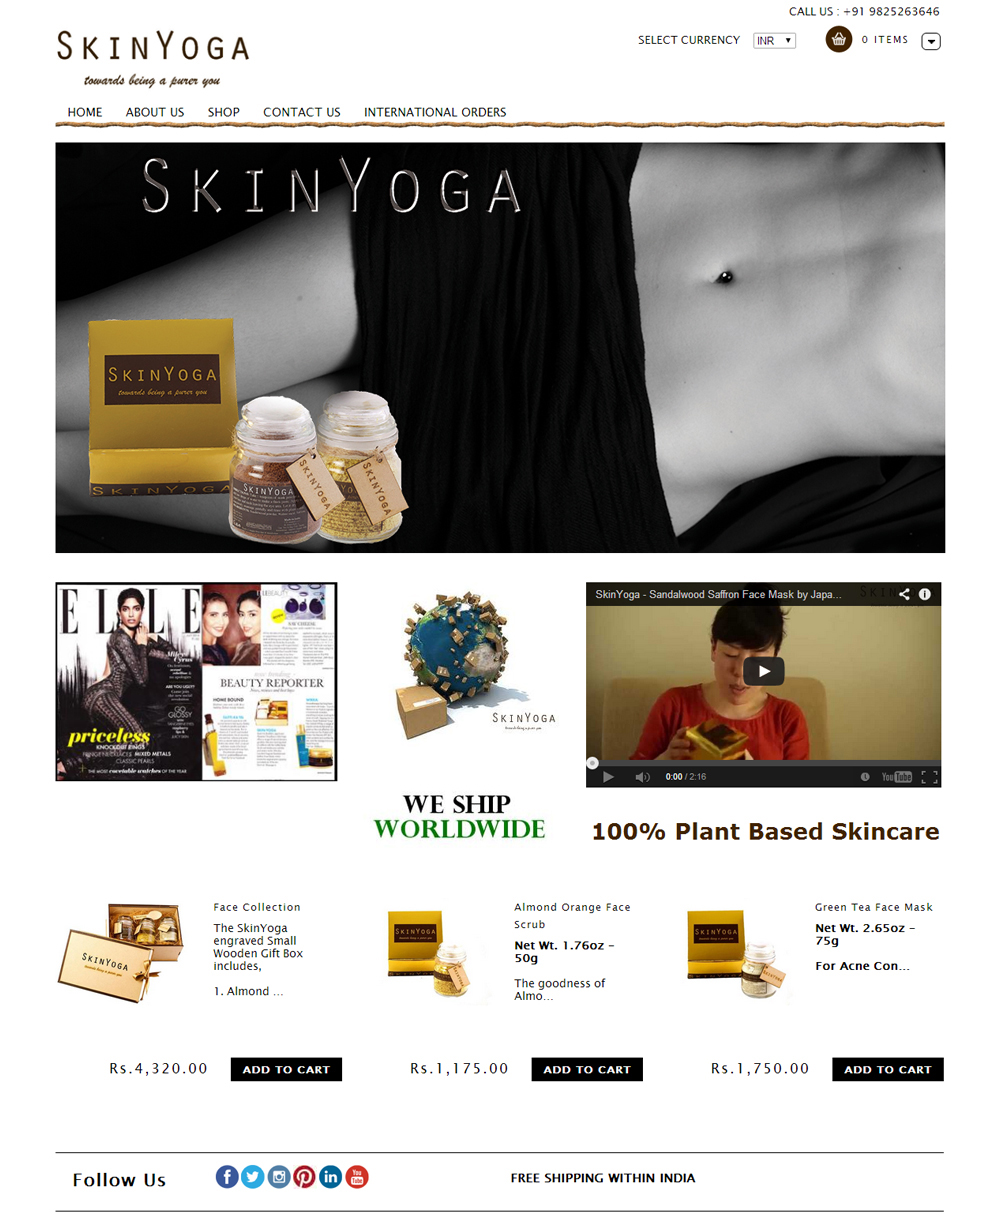 SkinYoga.in home page